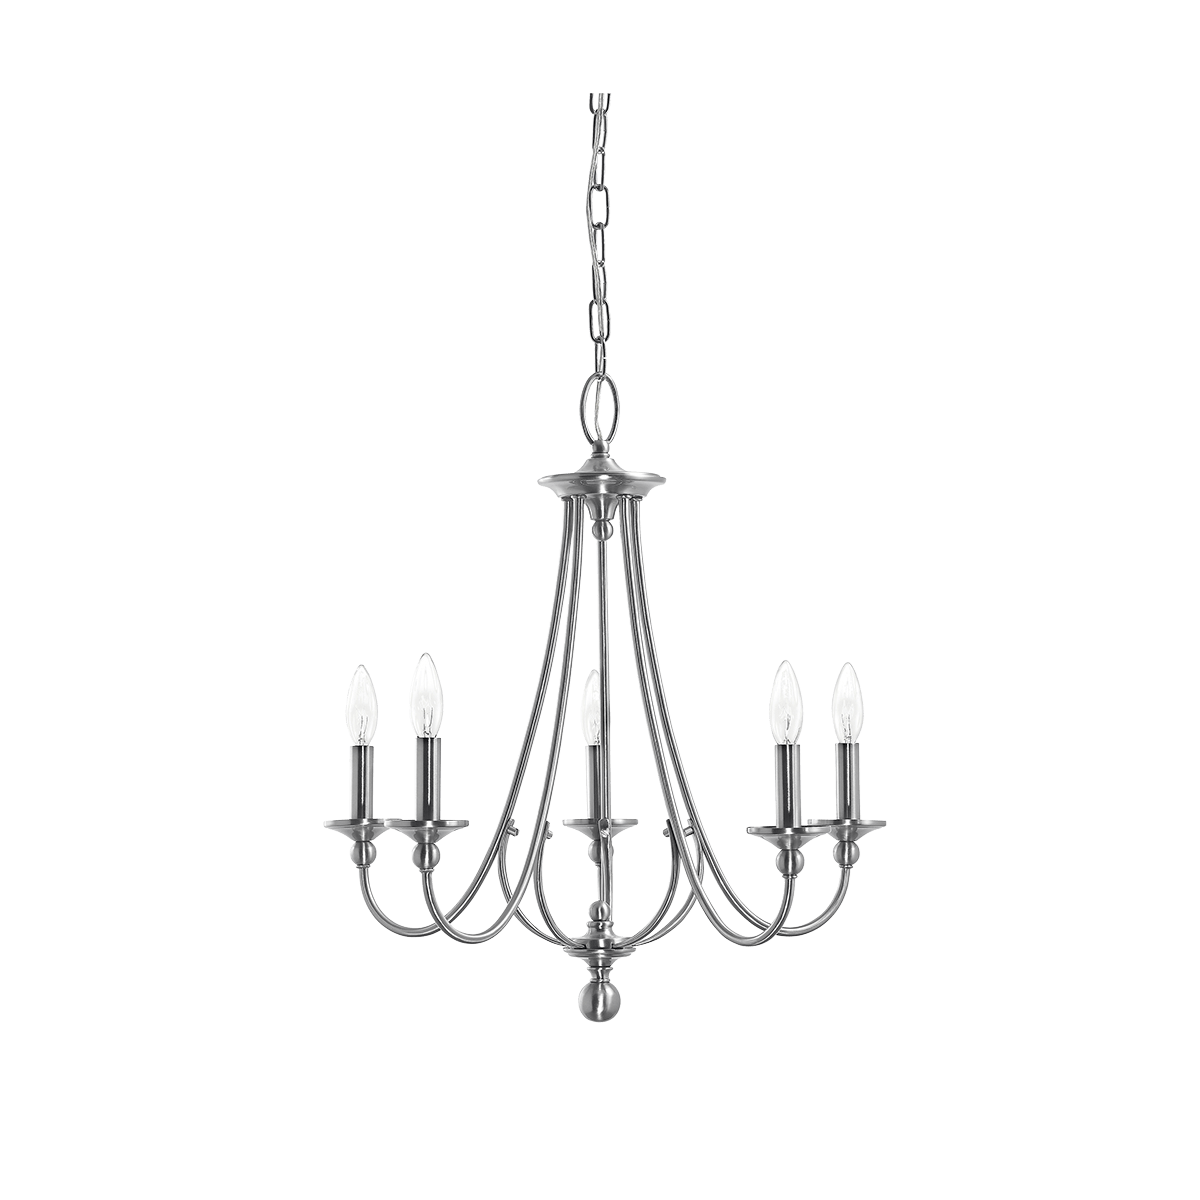 Camella 5 light chandelier in brushed nickel mommys church camella 5 light chandelier in brushed nickel arubaitofo Gallery